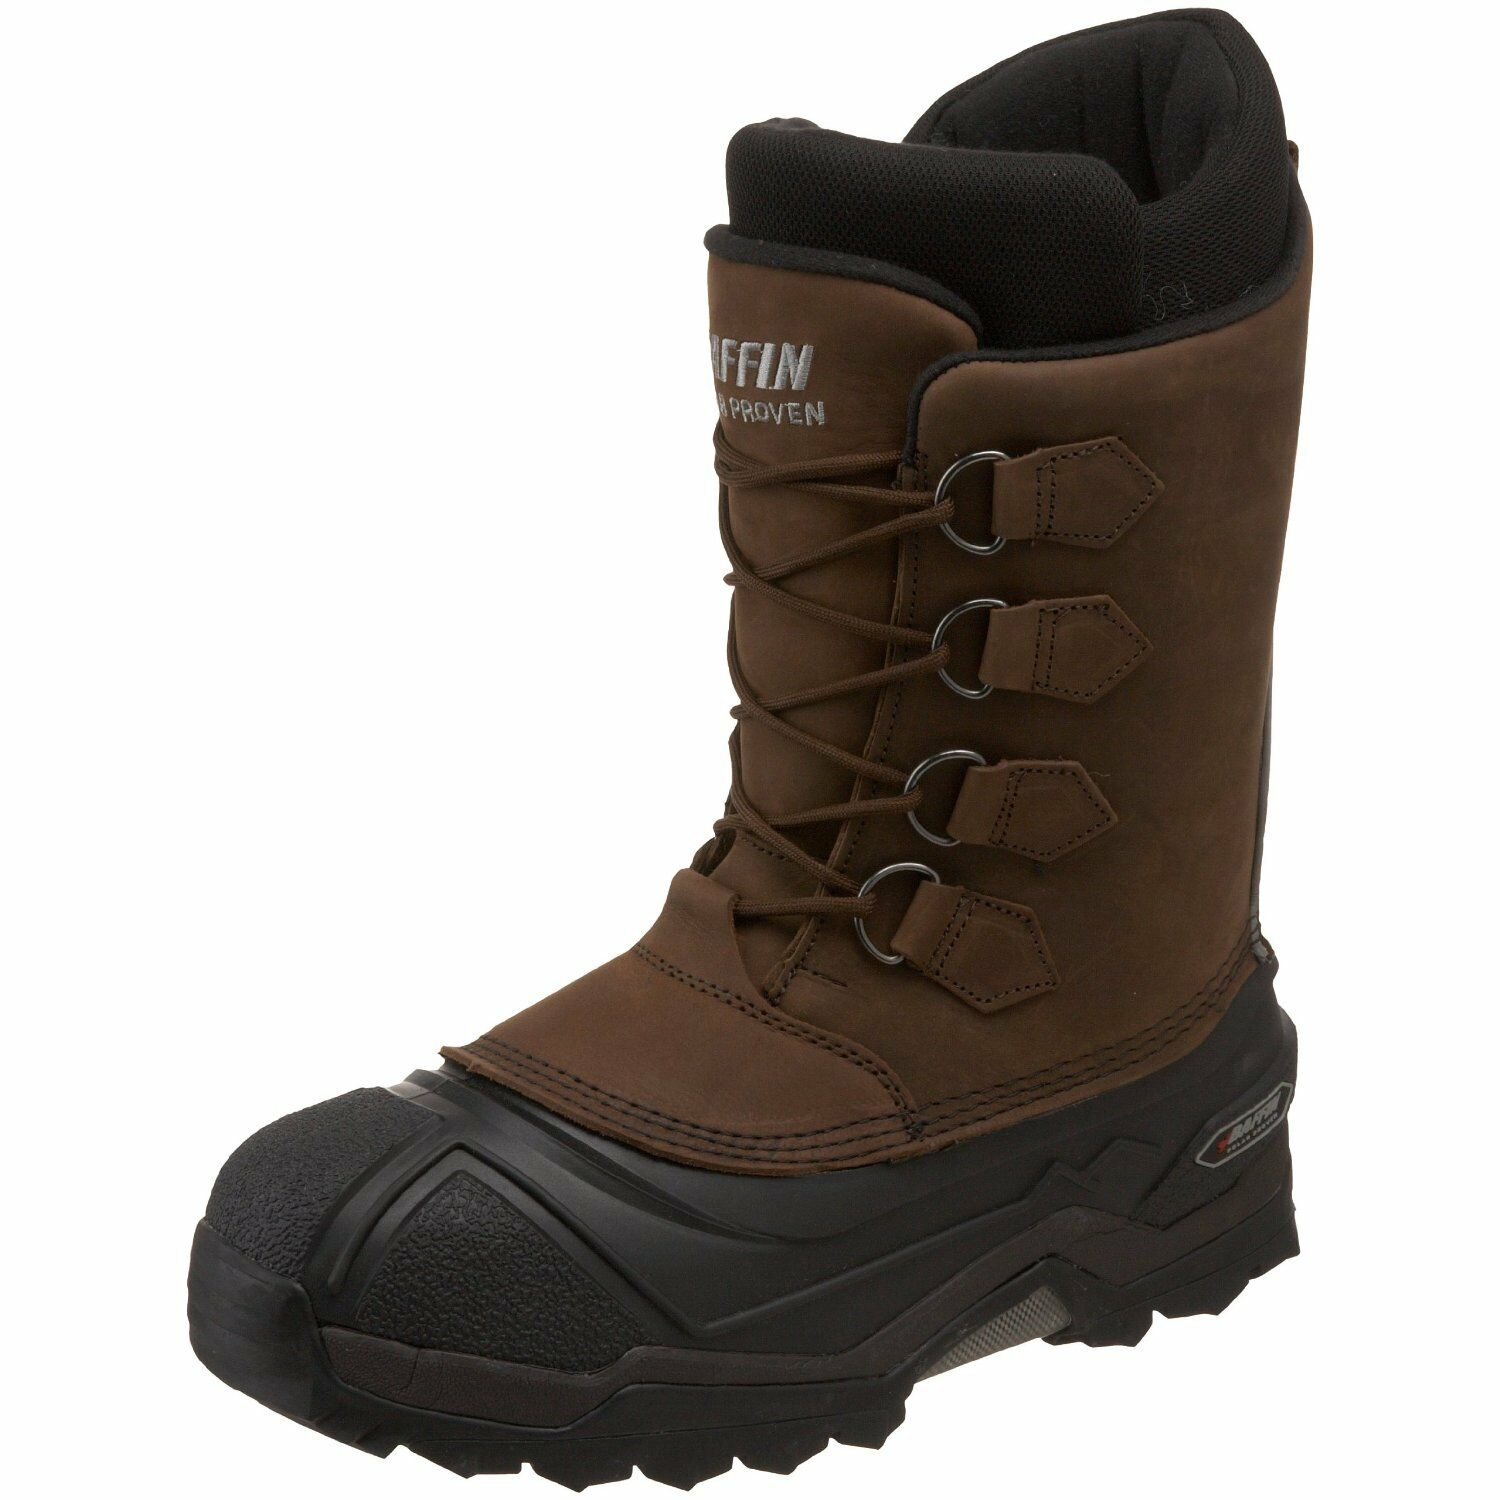 Baffin Winter Stiefel Control Max-Barque-Waterproof - 7100-1364 - to -70 ° C